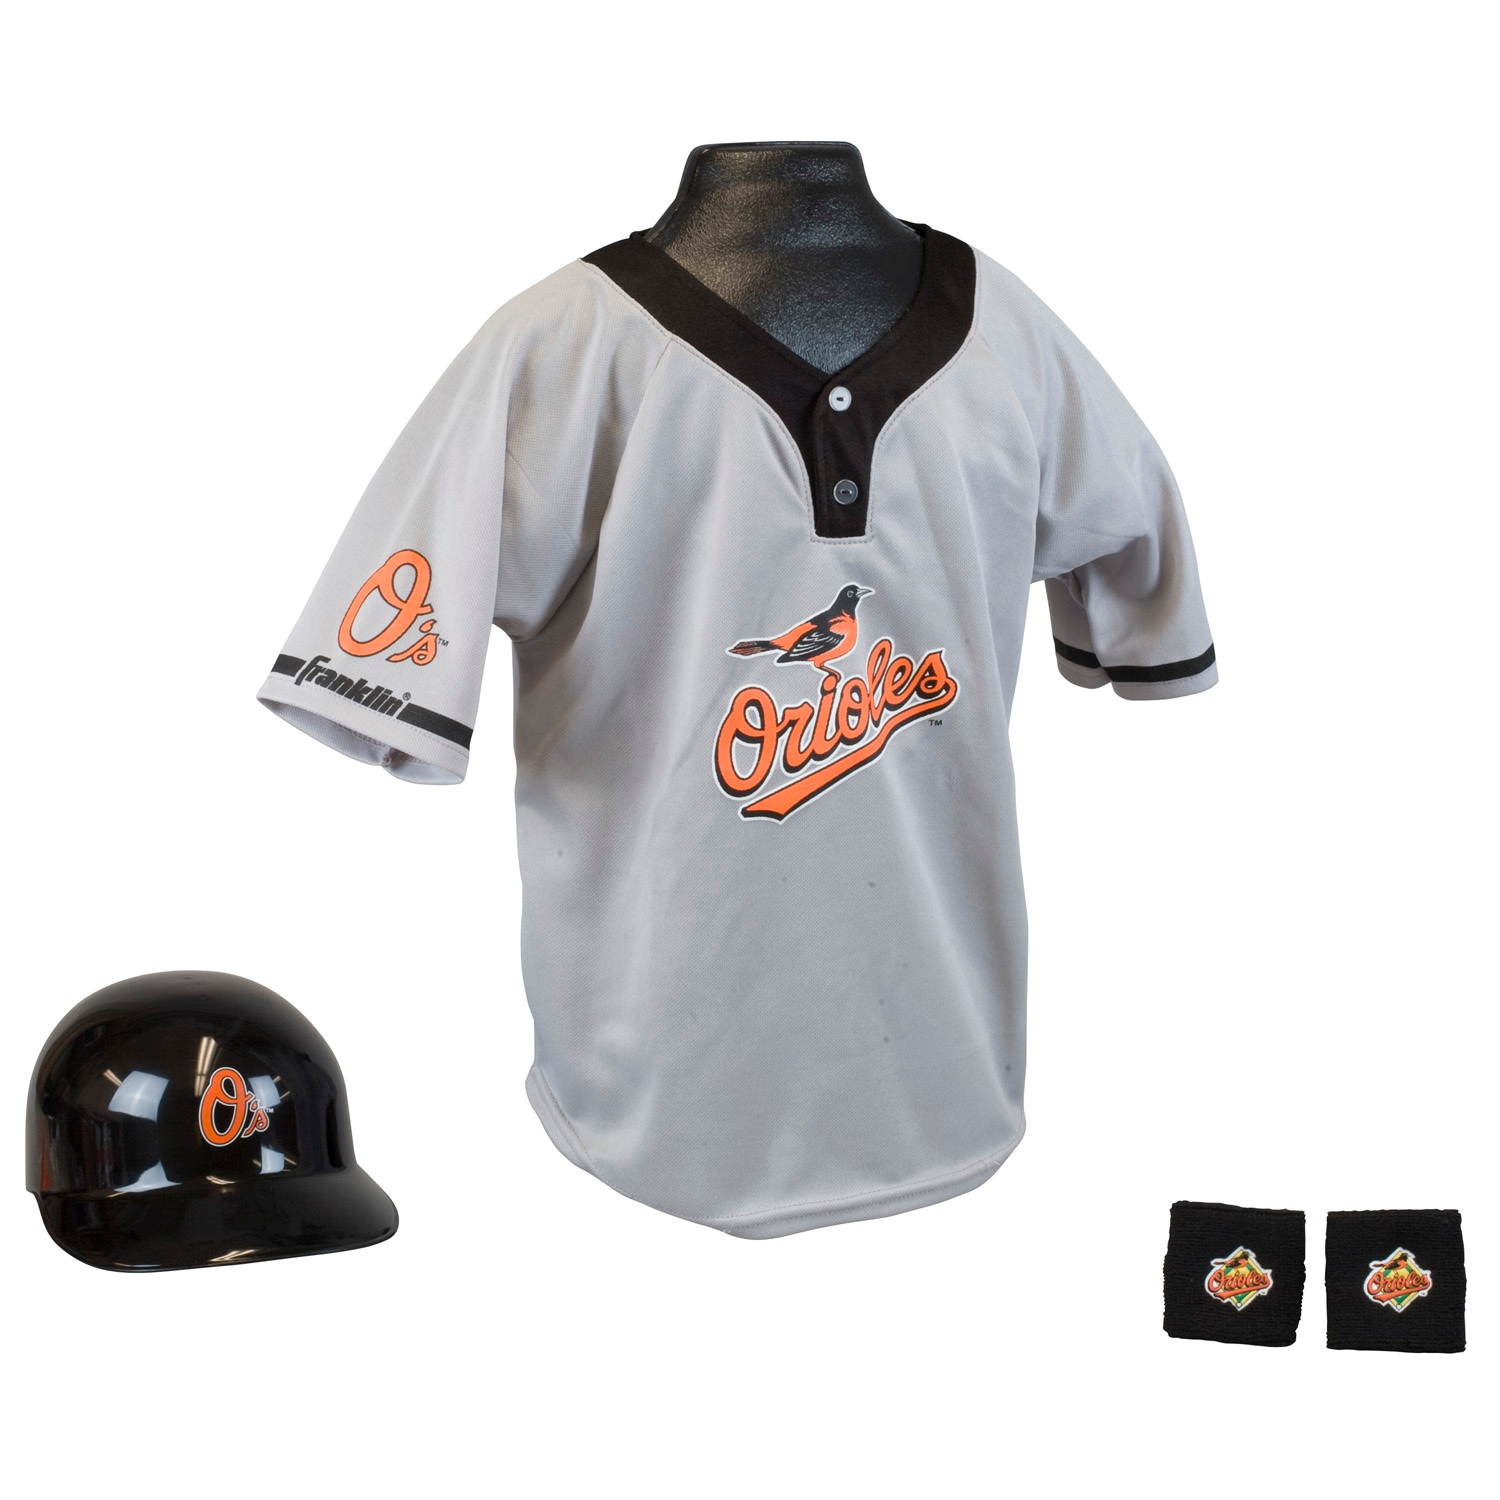 Baltimore Orioles MLB Youth Uniform Set Halloween Costume